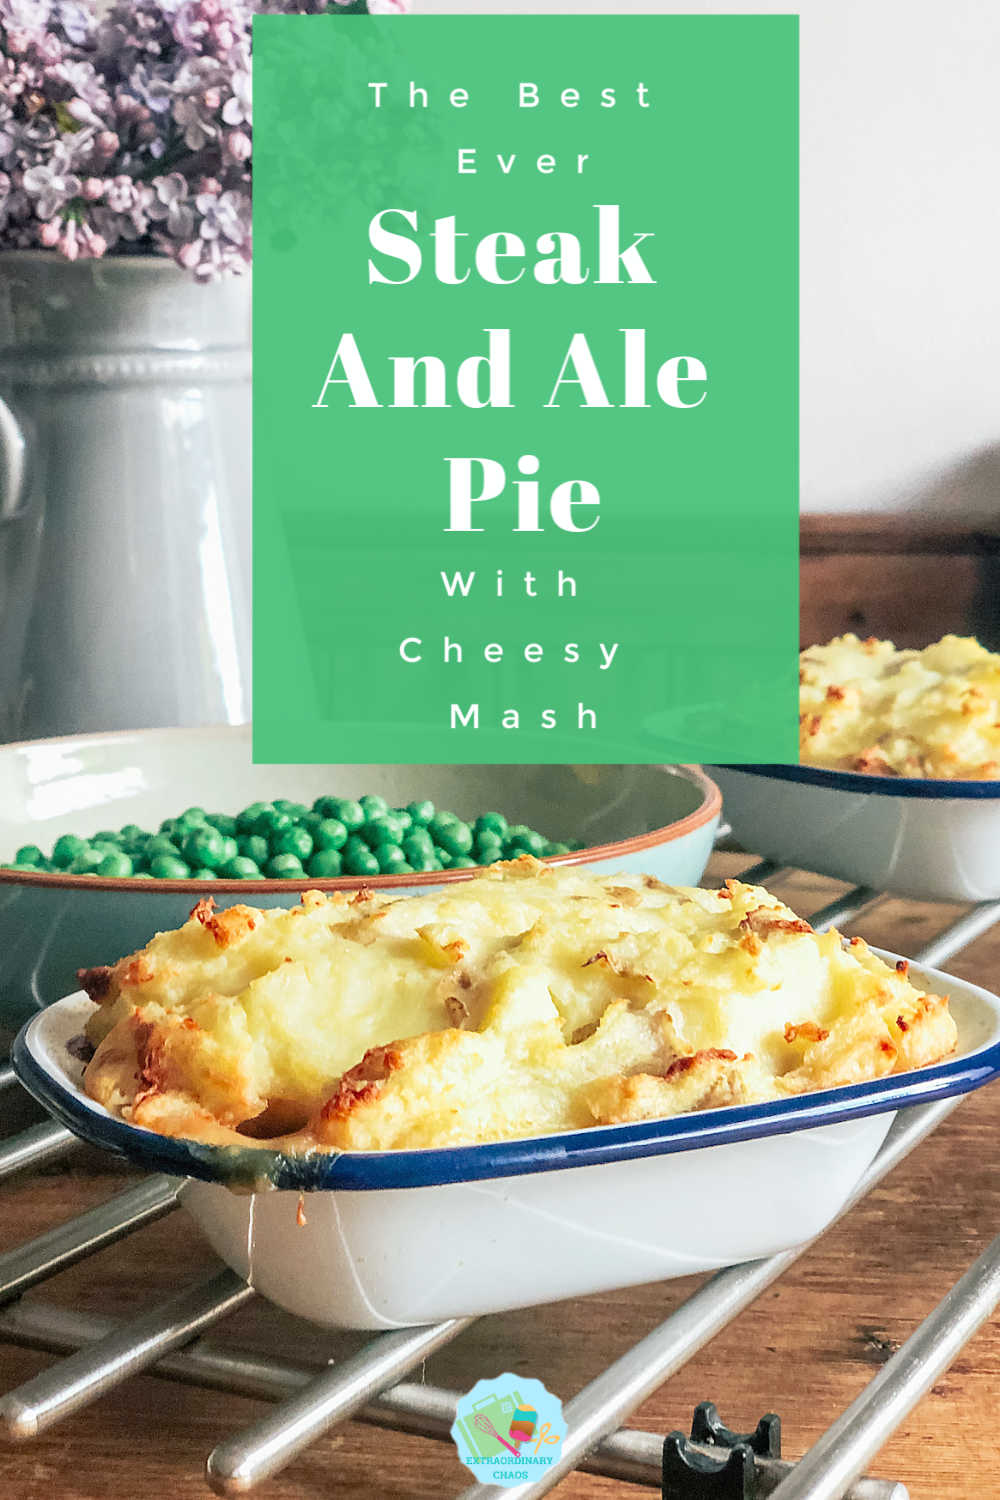 How to make slow cooker steak and ale pie with cheesy mash